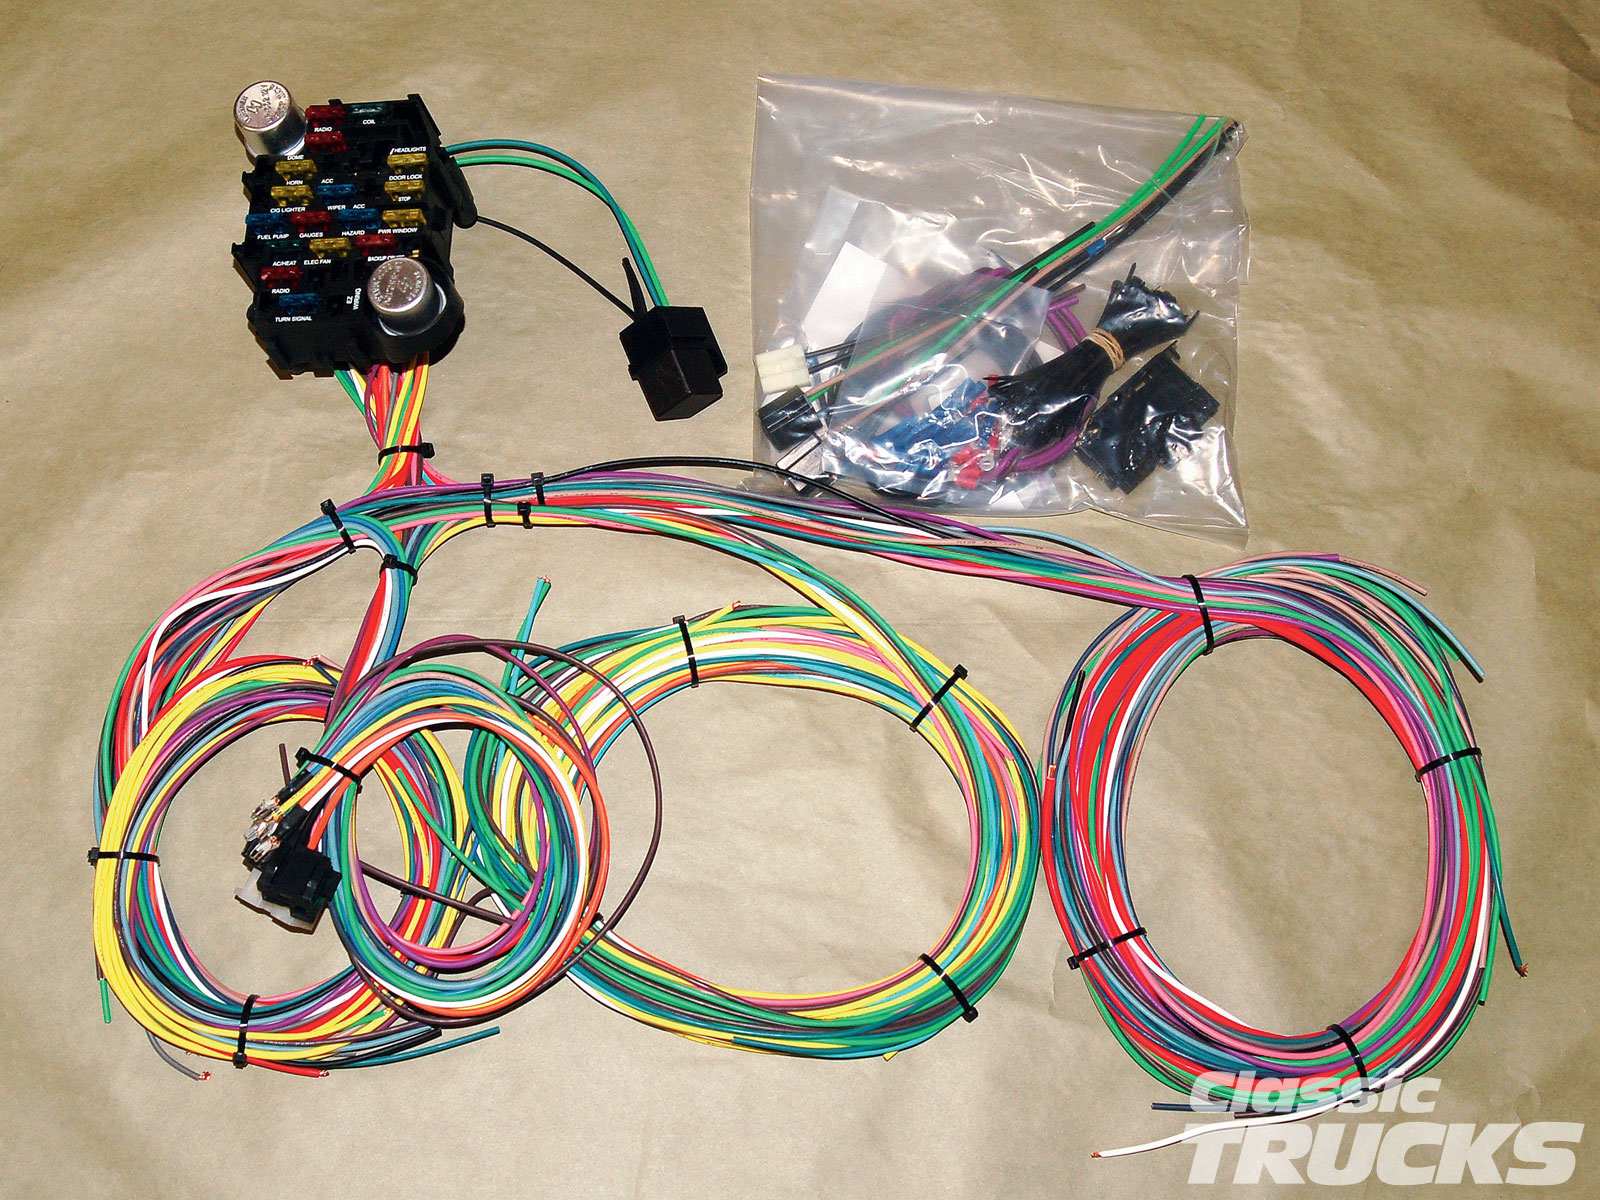 wiring diagram for aftermarket power windows rheem hot water system harness install - rod network